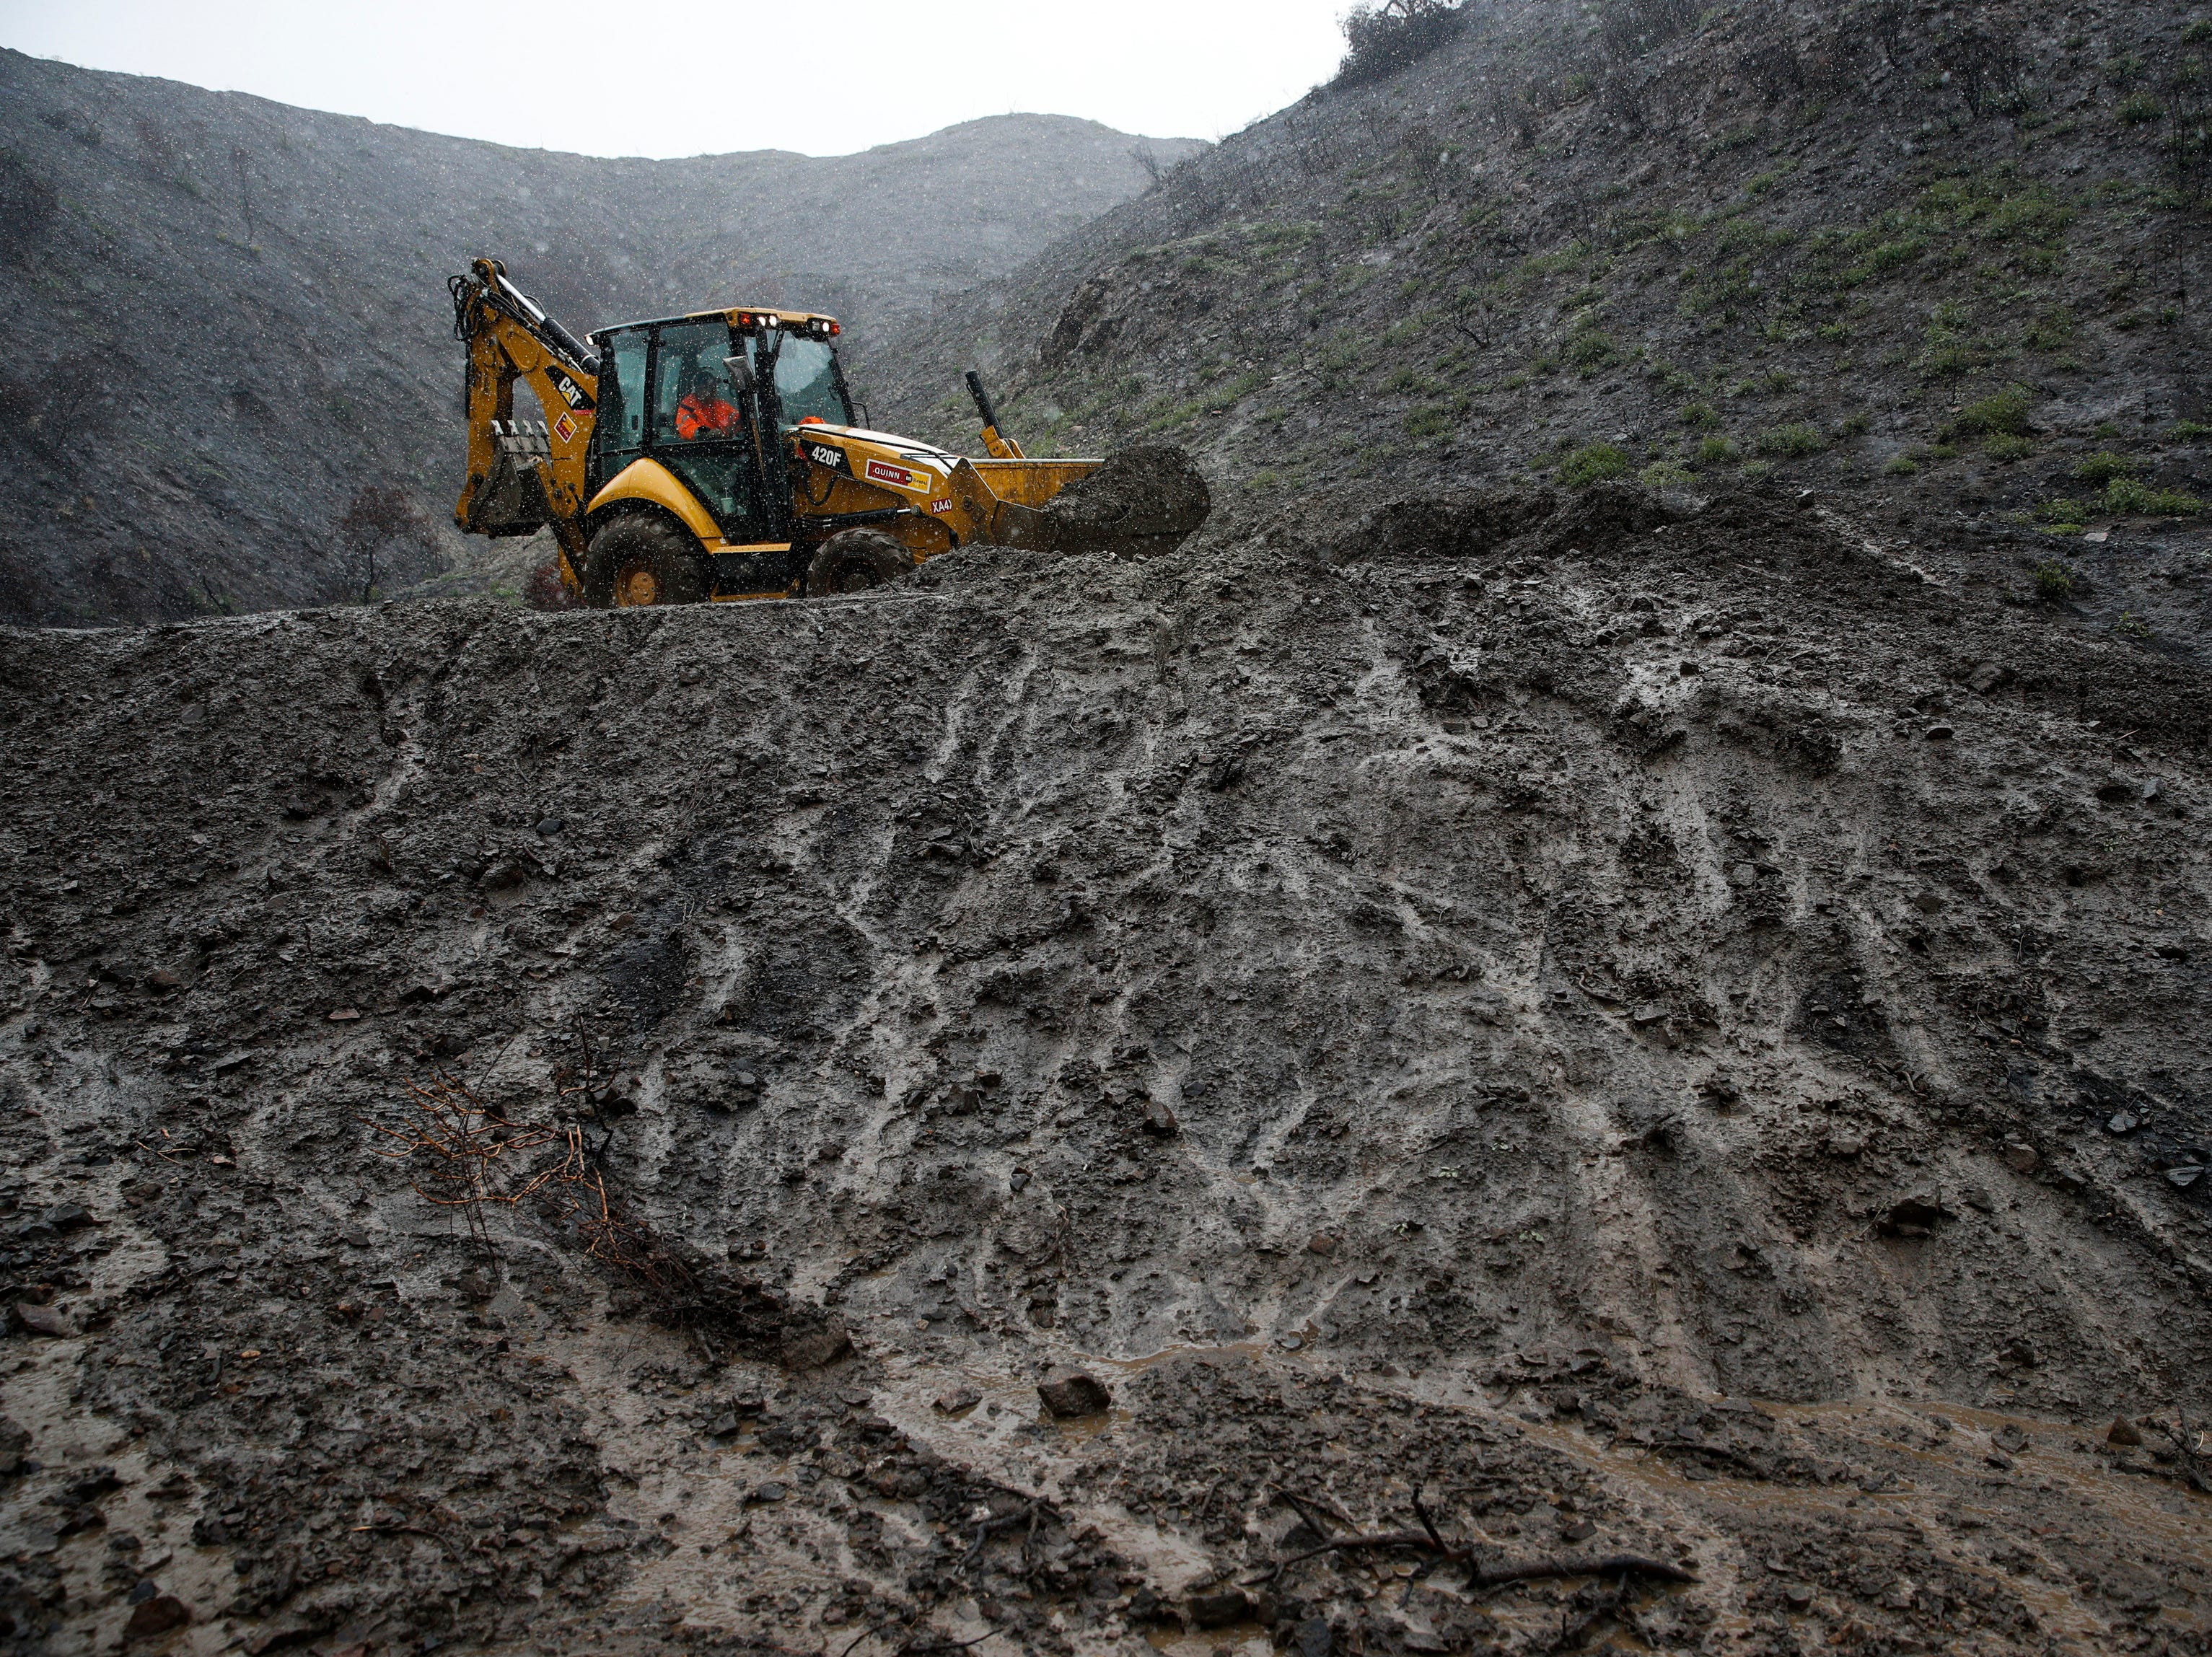 A worker removes a pile of dirt to prevent mudslides in the area burned by last year's Holy Fire Thursday, Jan. 17, 2019, in Lake Elsinore, Calif.